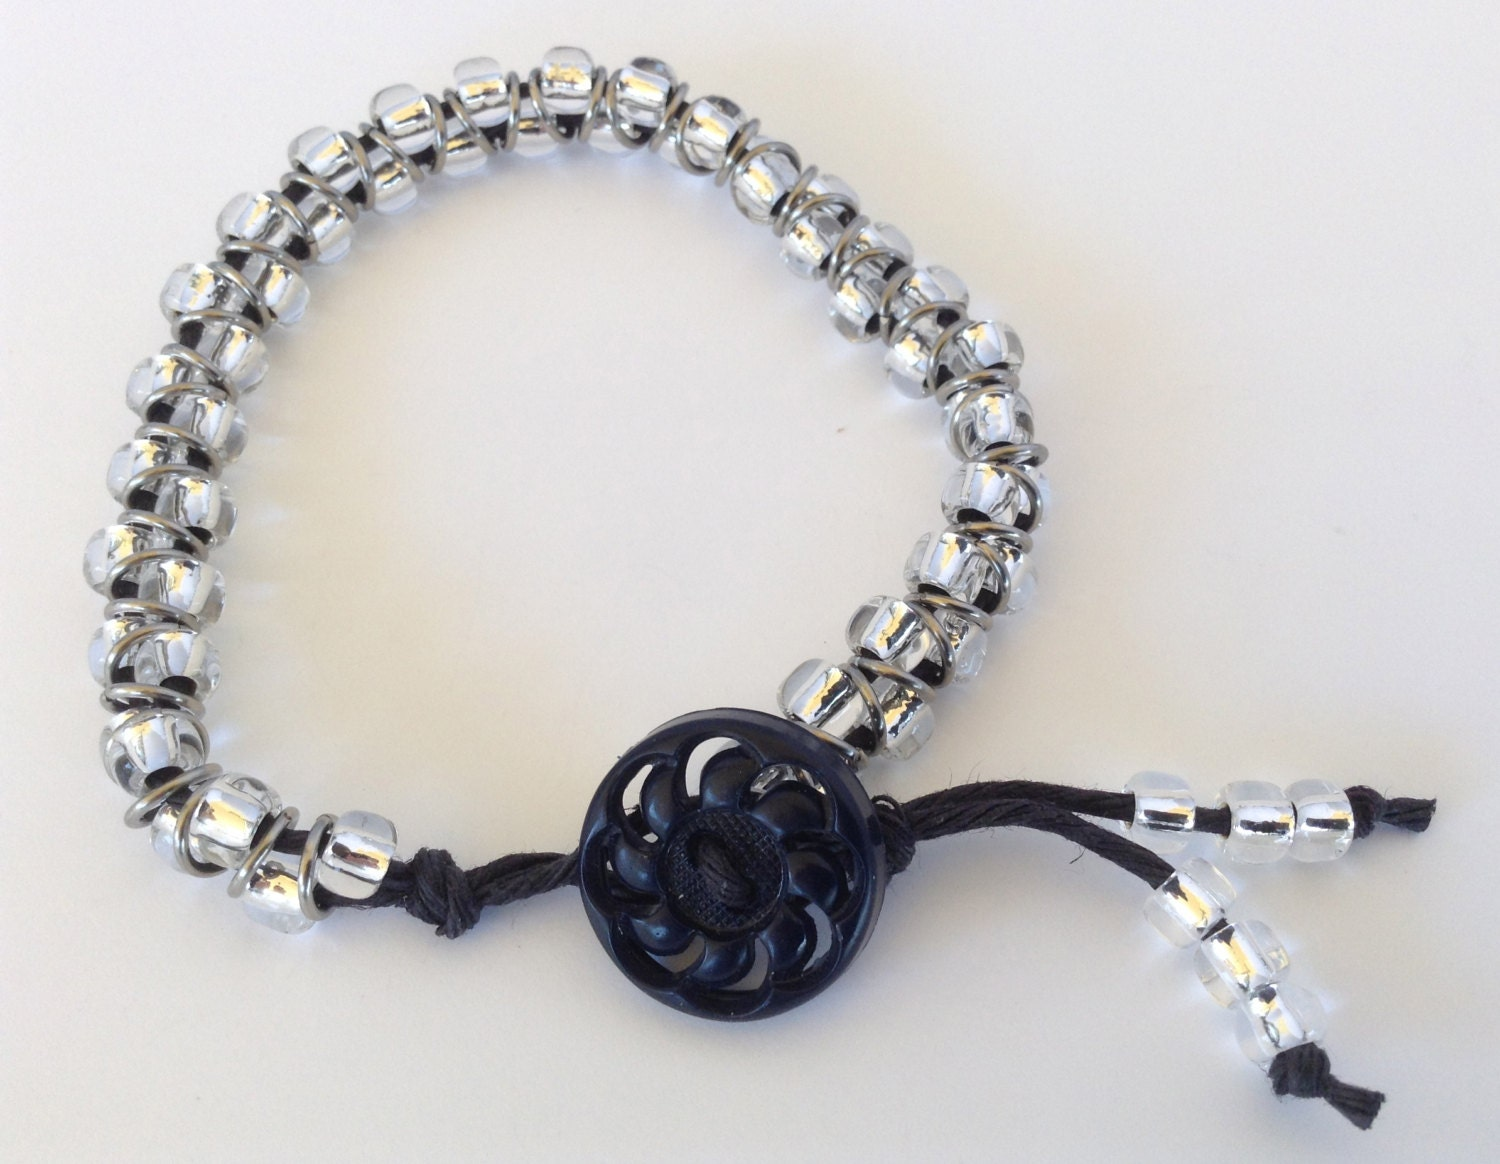 Beaded Bracelet With Black Hemp Cord And Antique Black Button